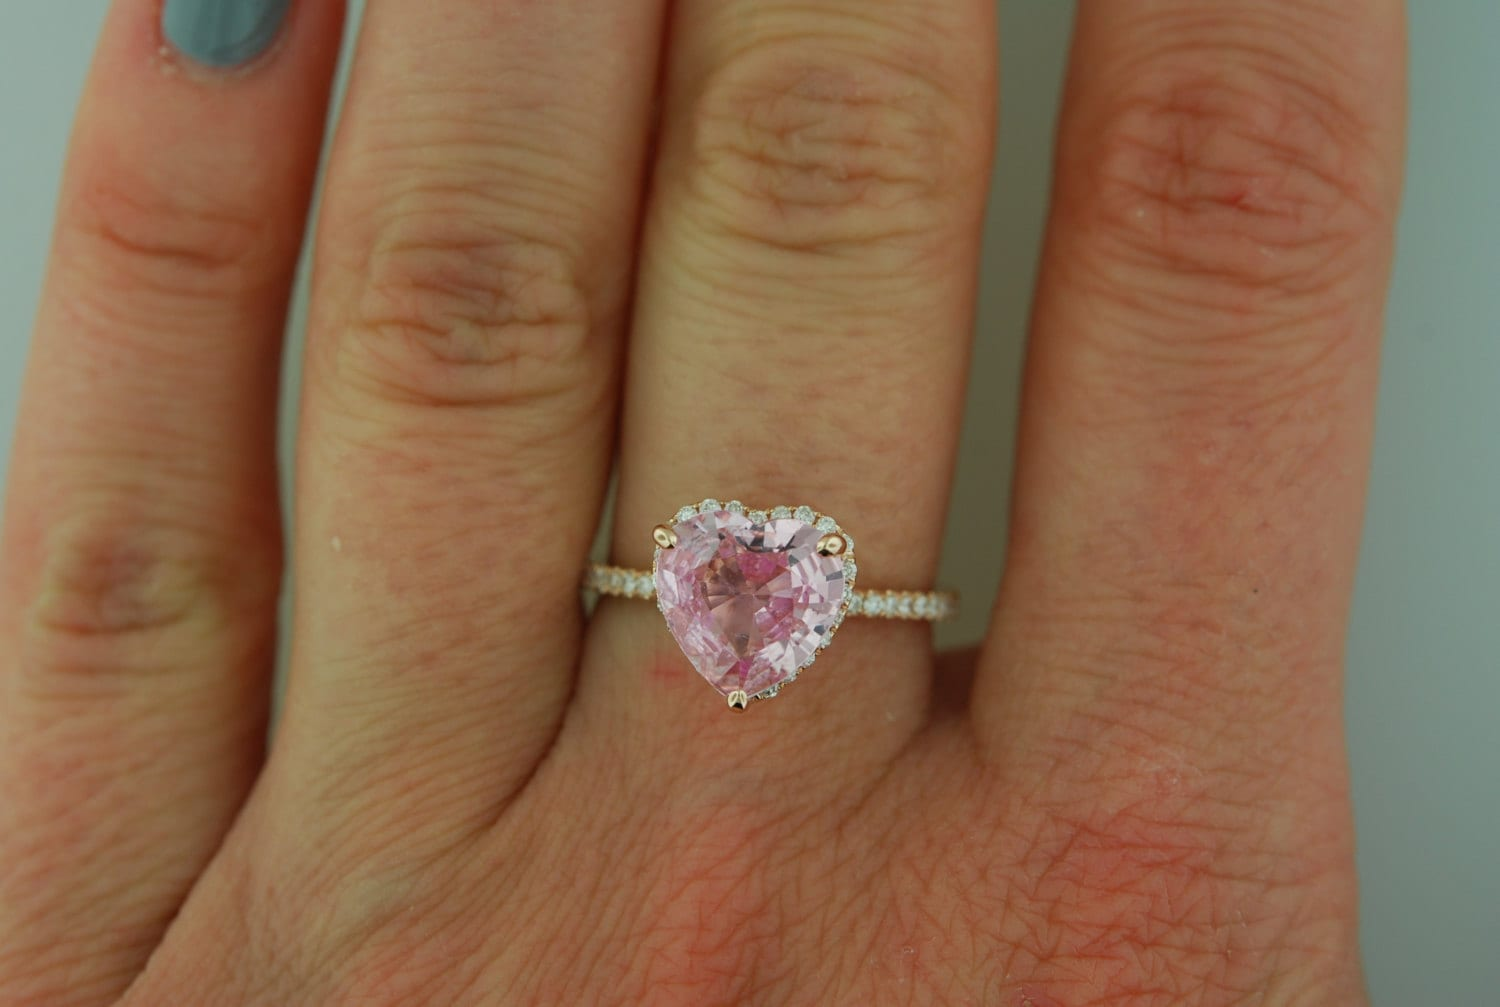 diamond engagement of rings uk large ring images shaped size wedding pink solitaire australia heart